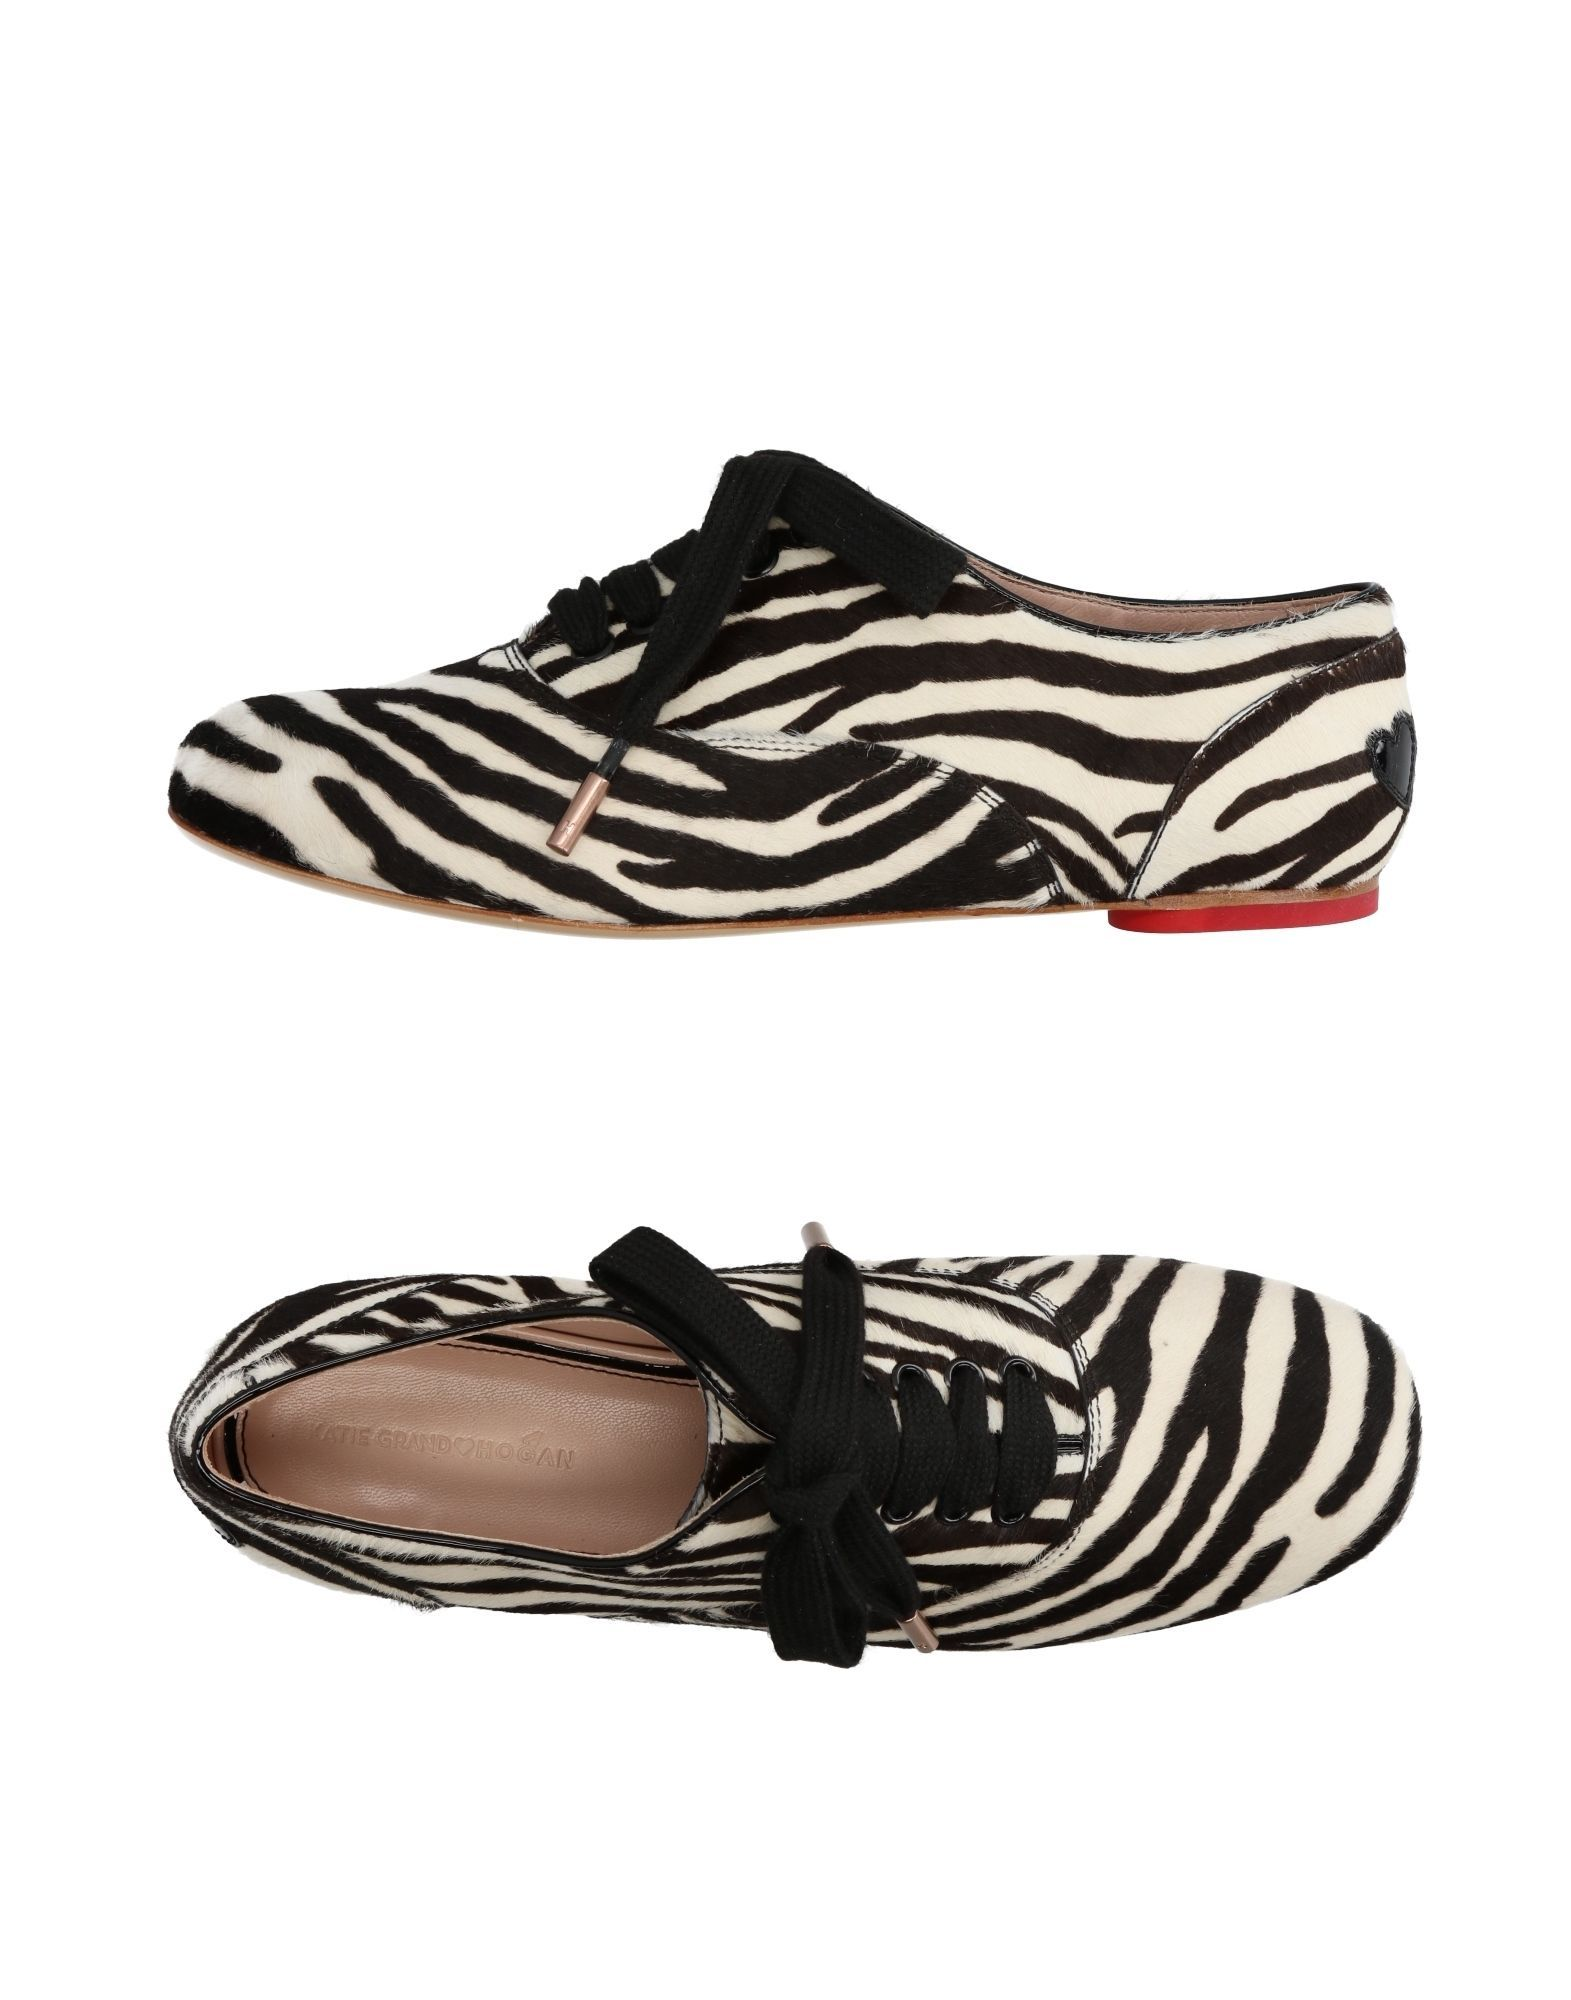 Katie Grand Loves Hogan White Calf Leather Lace Up Shoes